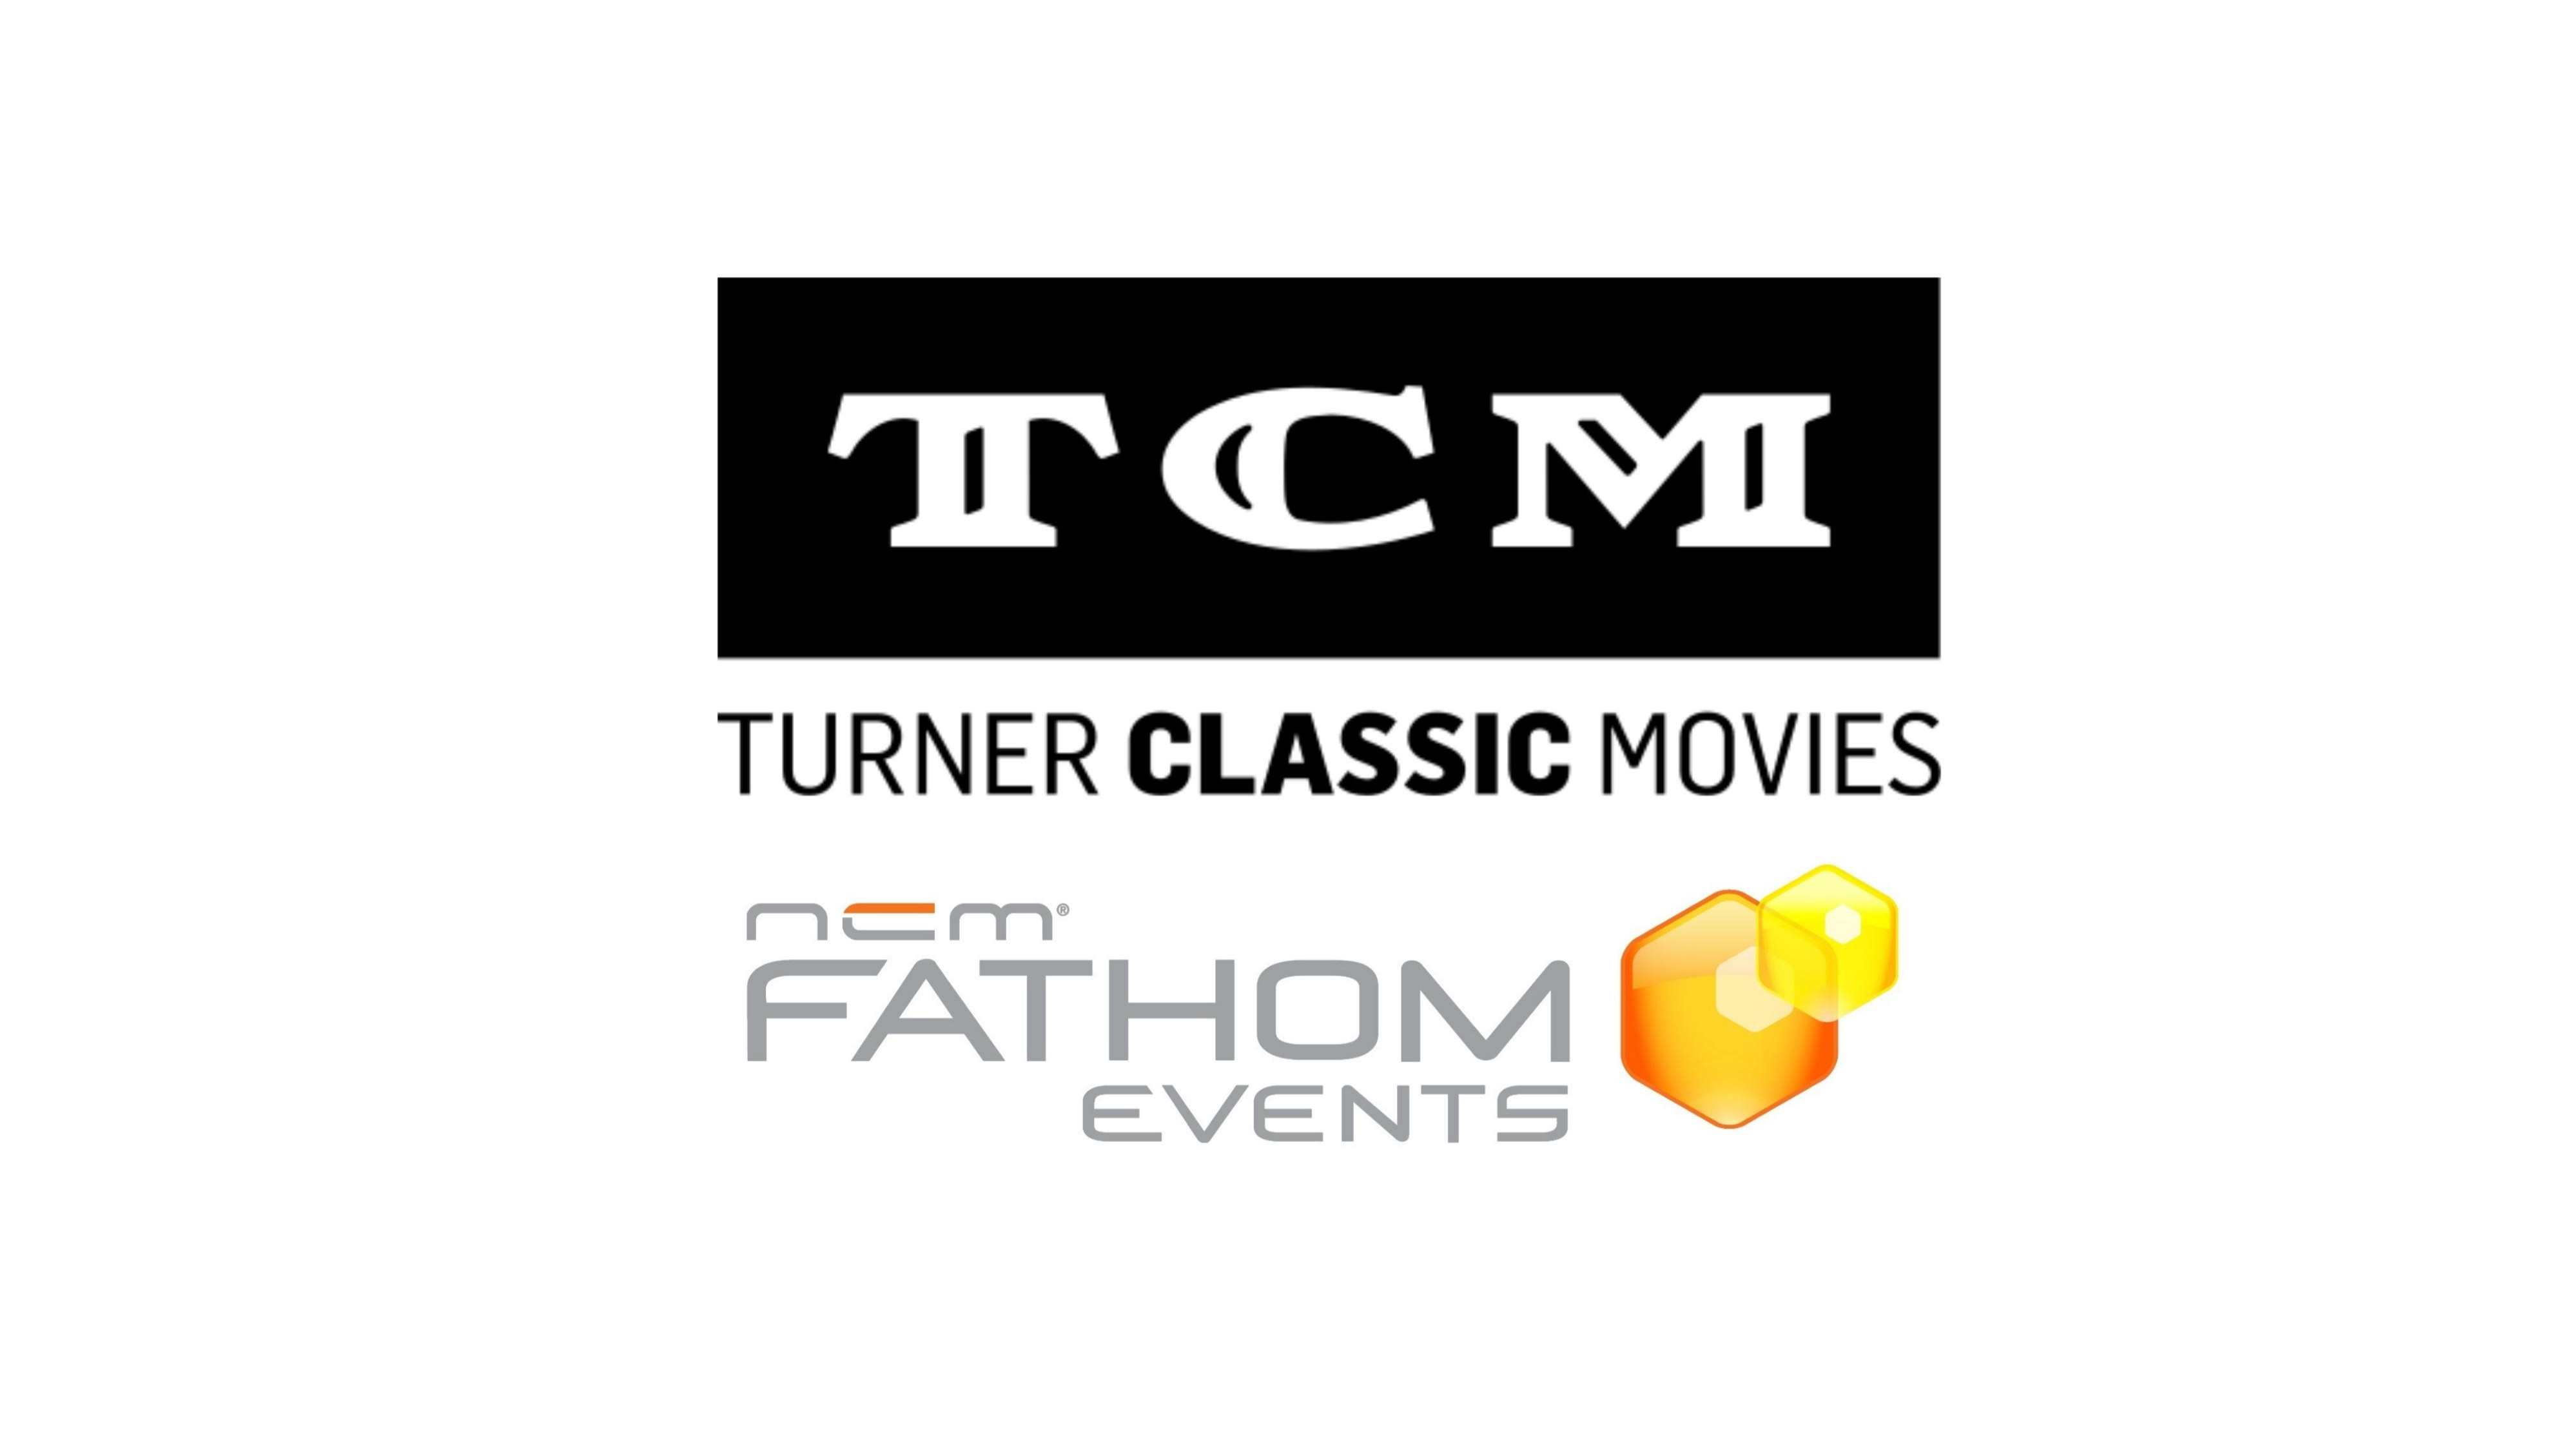 tcm to bring back multiple classic films through fathom events in